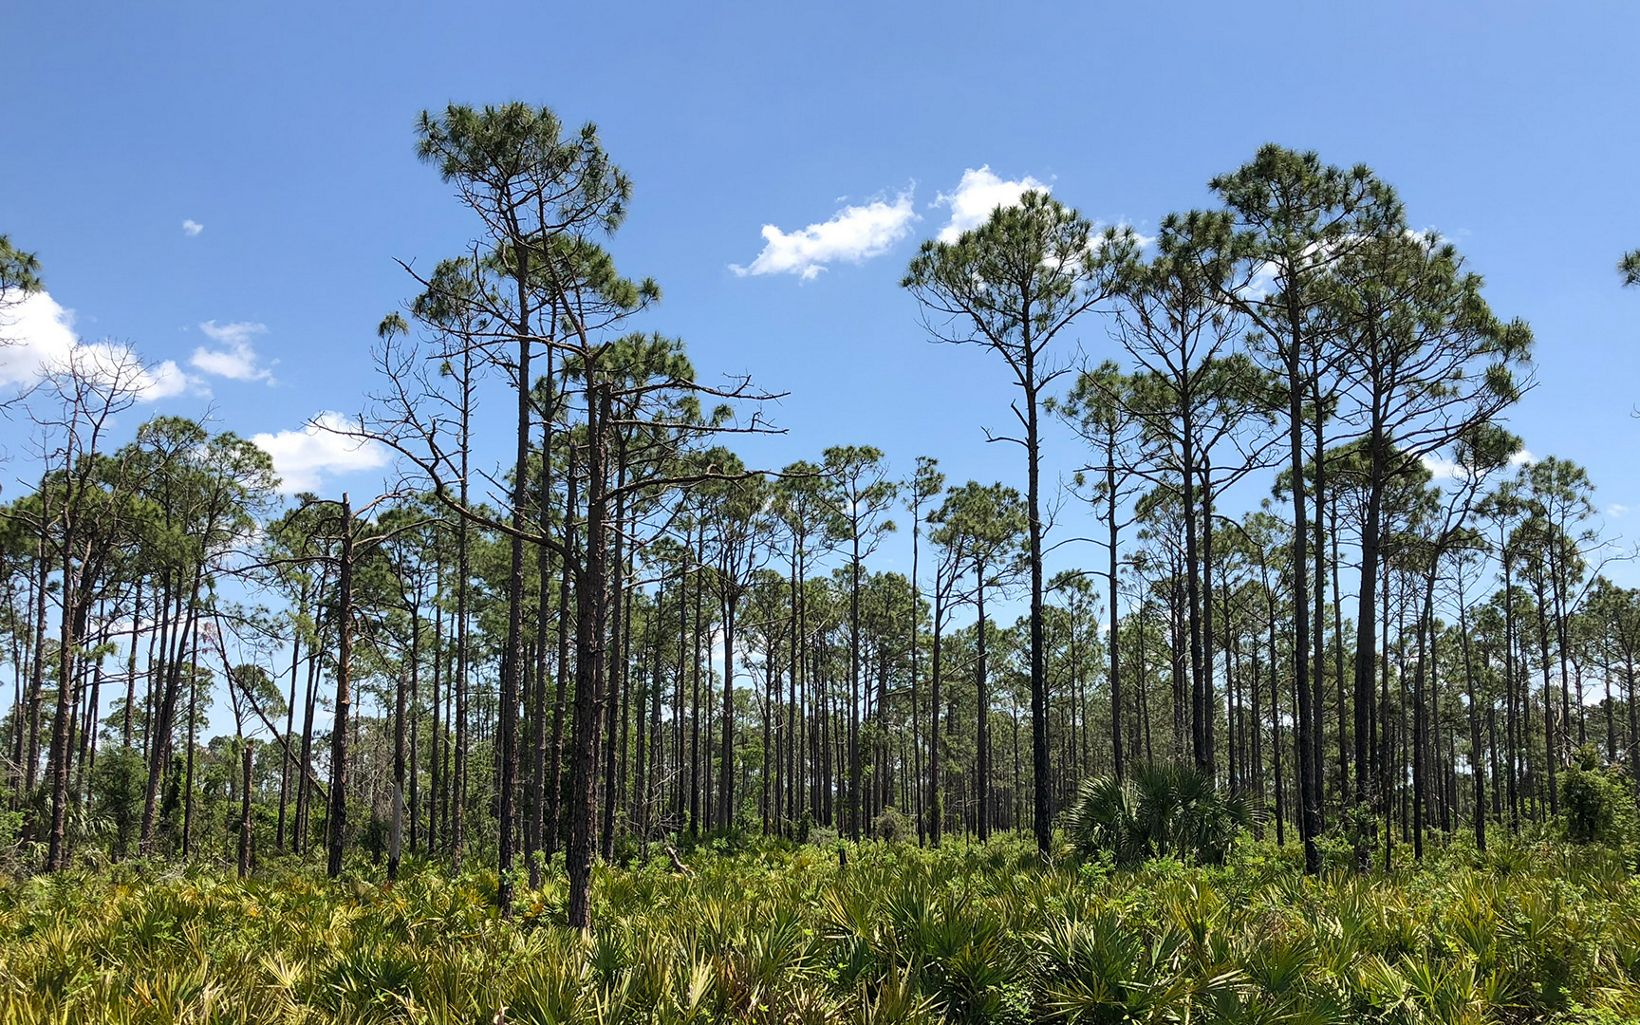 Rafter T Ranch pine trees and saw palmetto